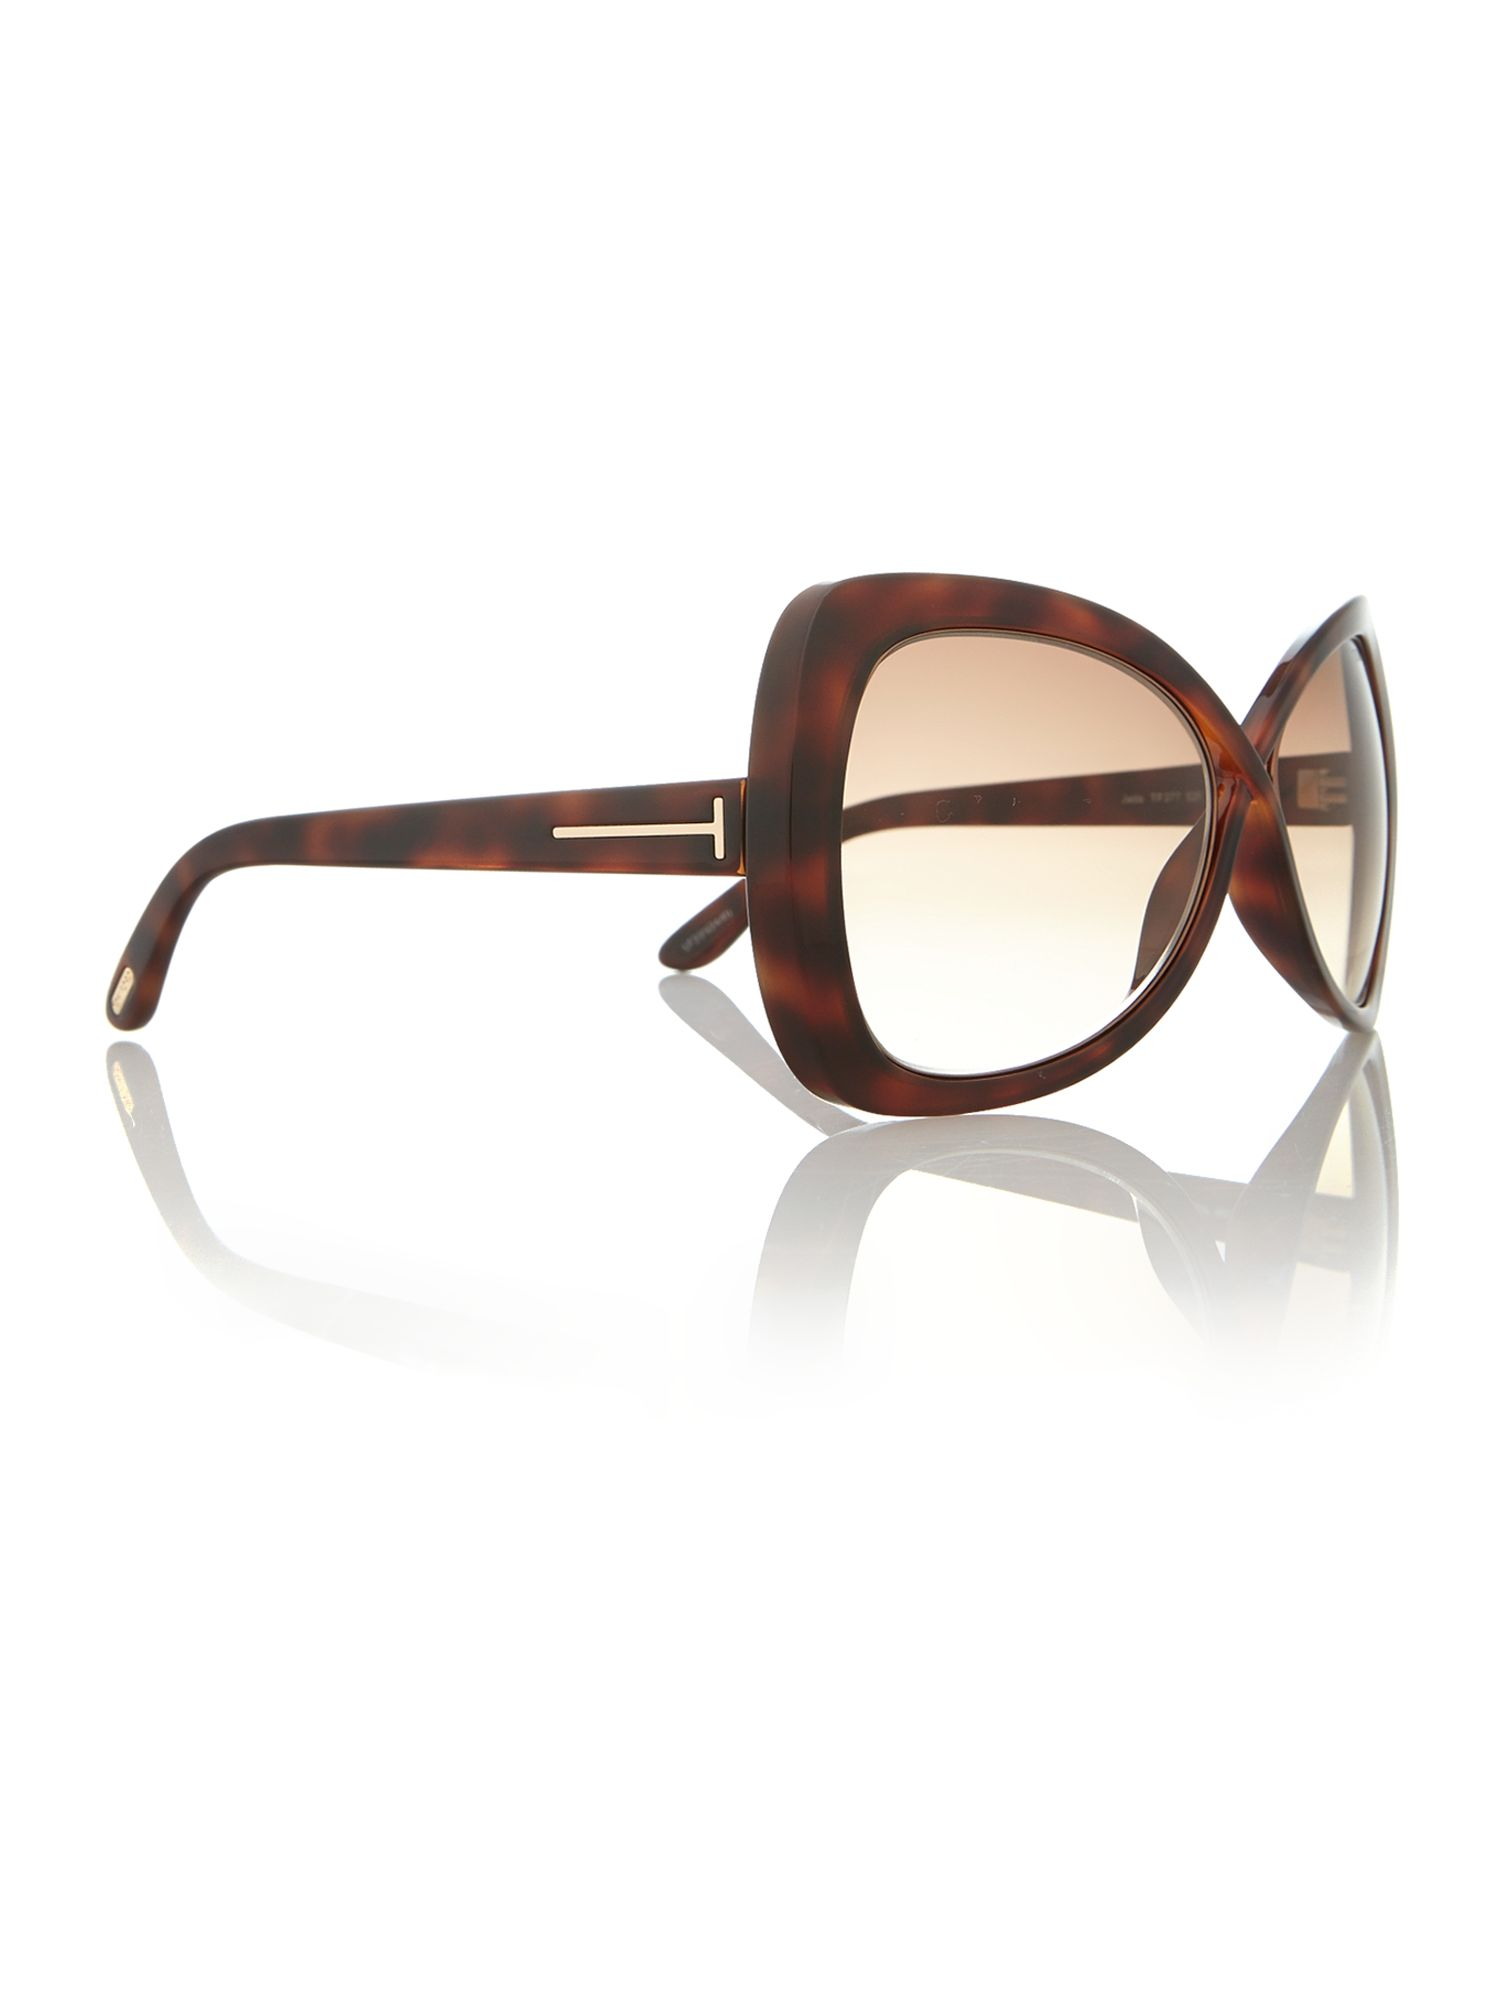 Ladies FT0277 tortoise brown jade sunglasses